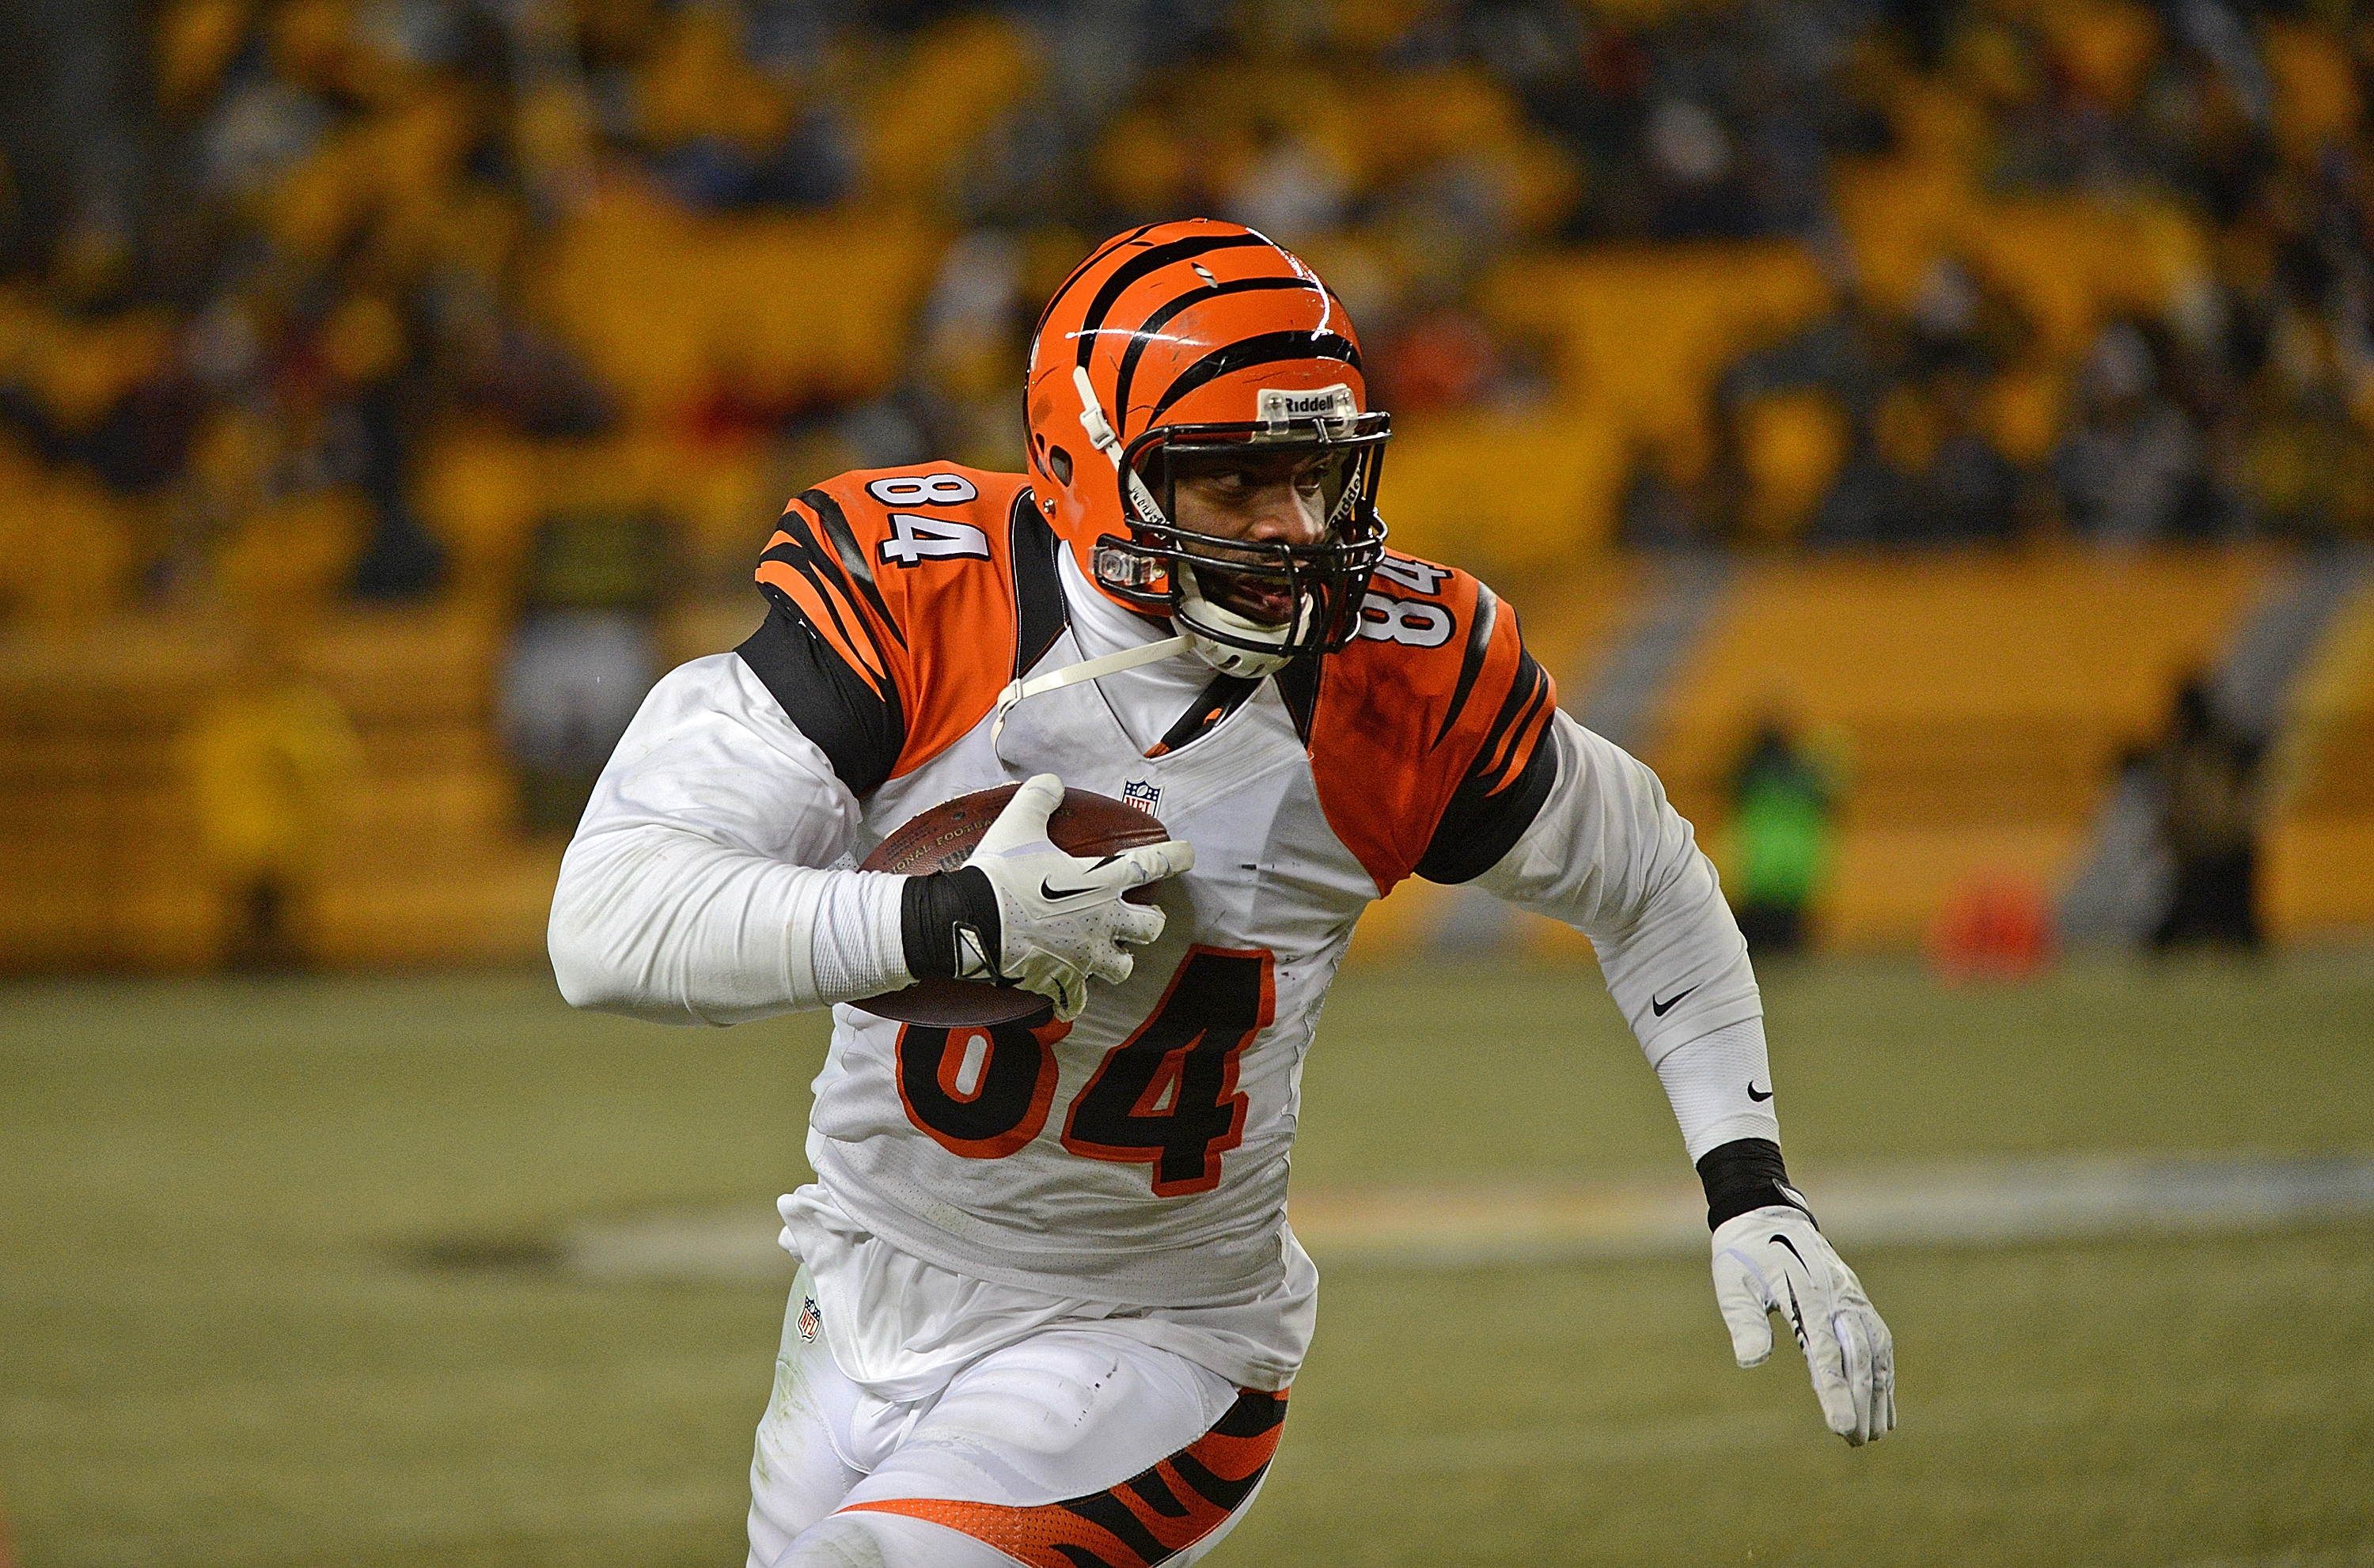 The Cincinnati Bengals activated tight end Jermaine Gresham, along with four other players, for practice Monday.